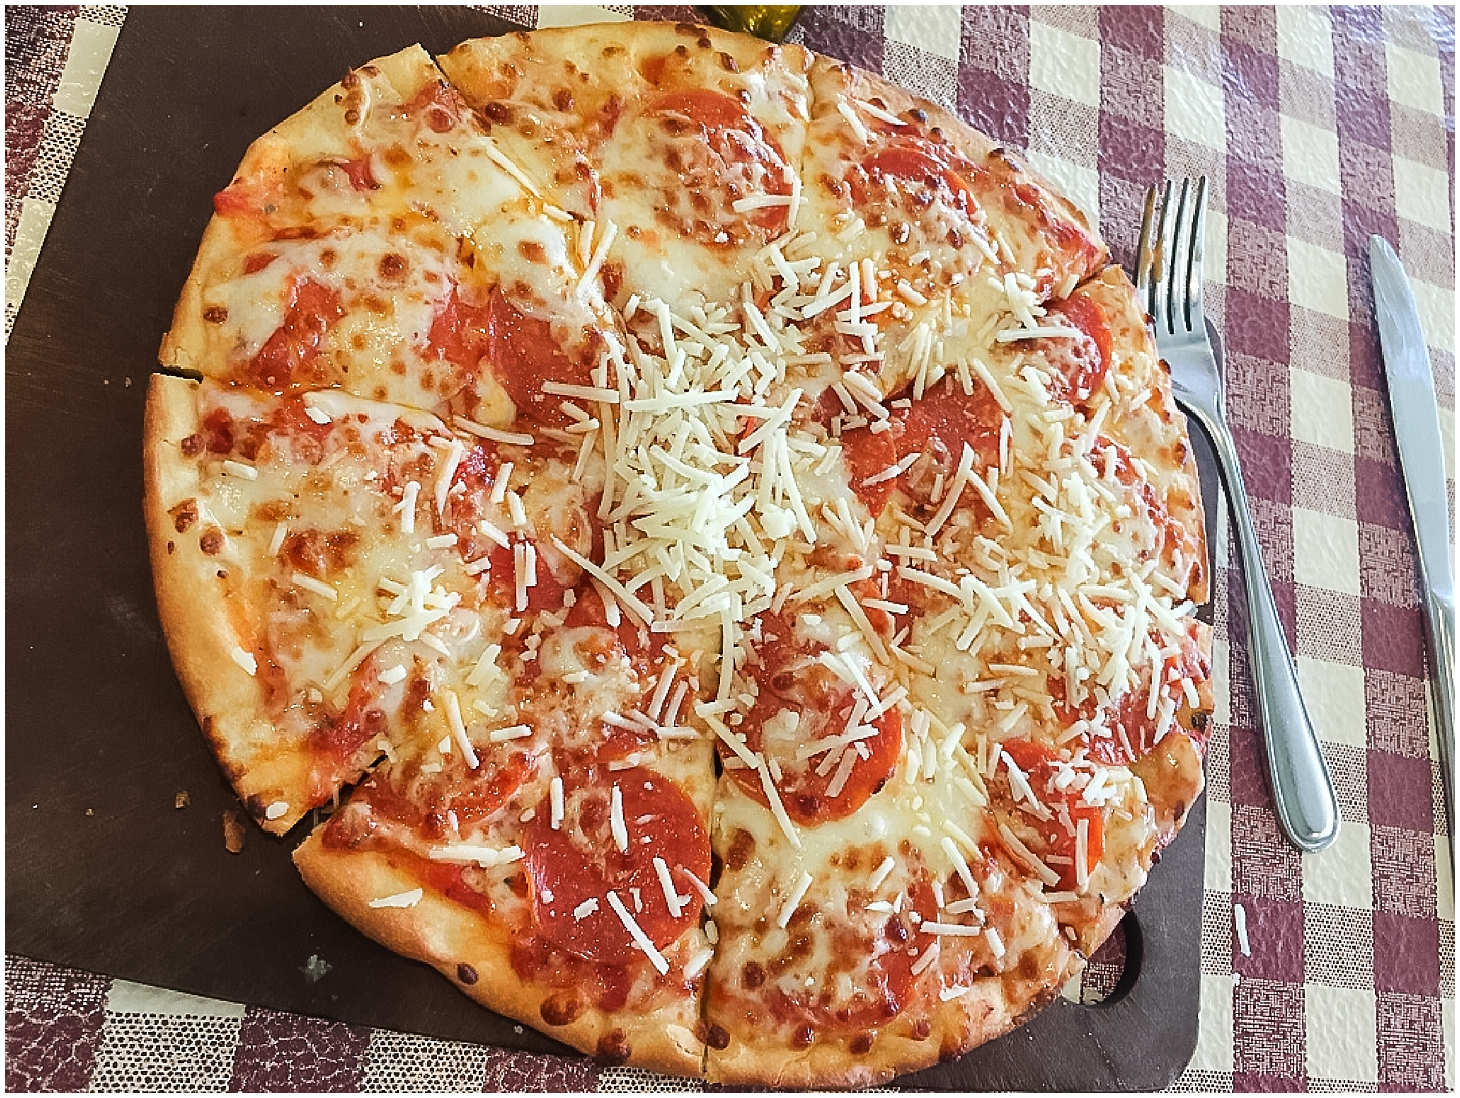 Pepperoni pizza from Zia's Caffe in Kaheohe, Hawaii. Photo by Jade Min Photography.